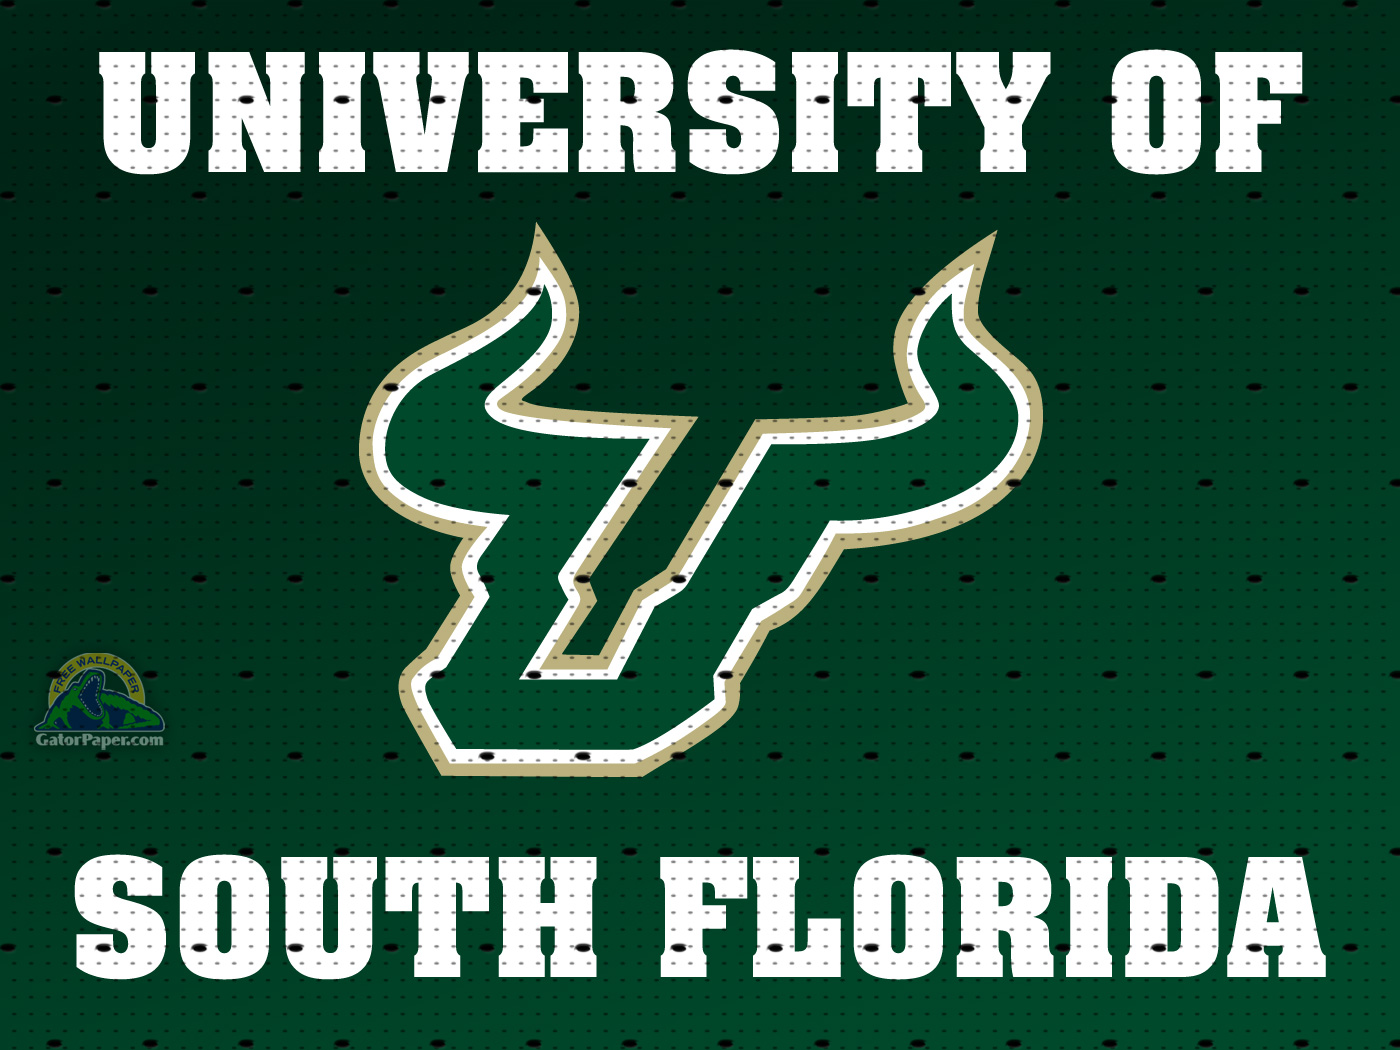 FREE USF WALLPAPER FREE UNIVERSITY OF SOUTH FLORIDA WALLPAPER 1400x1050